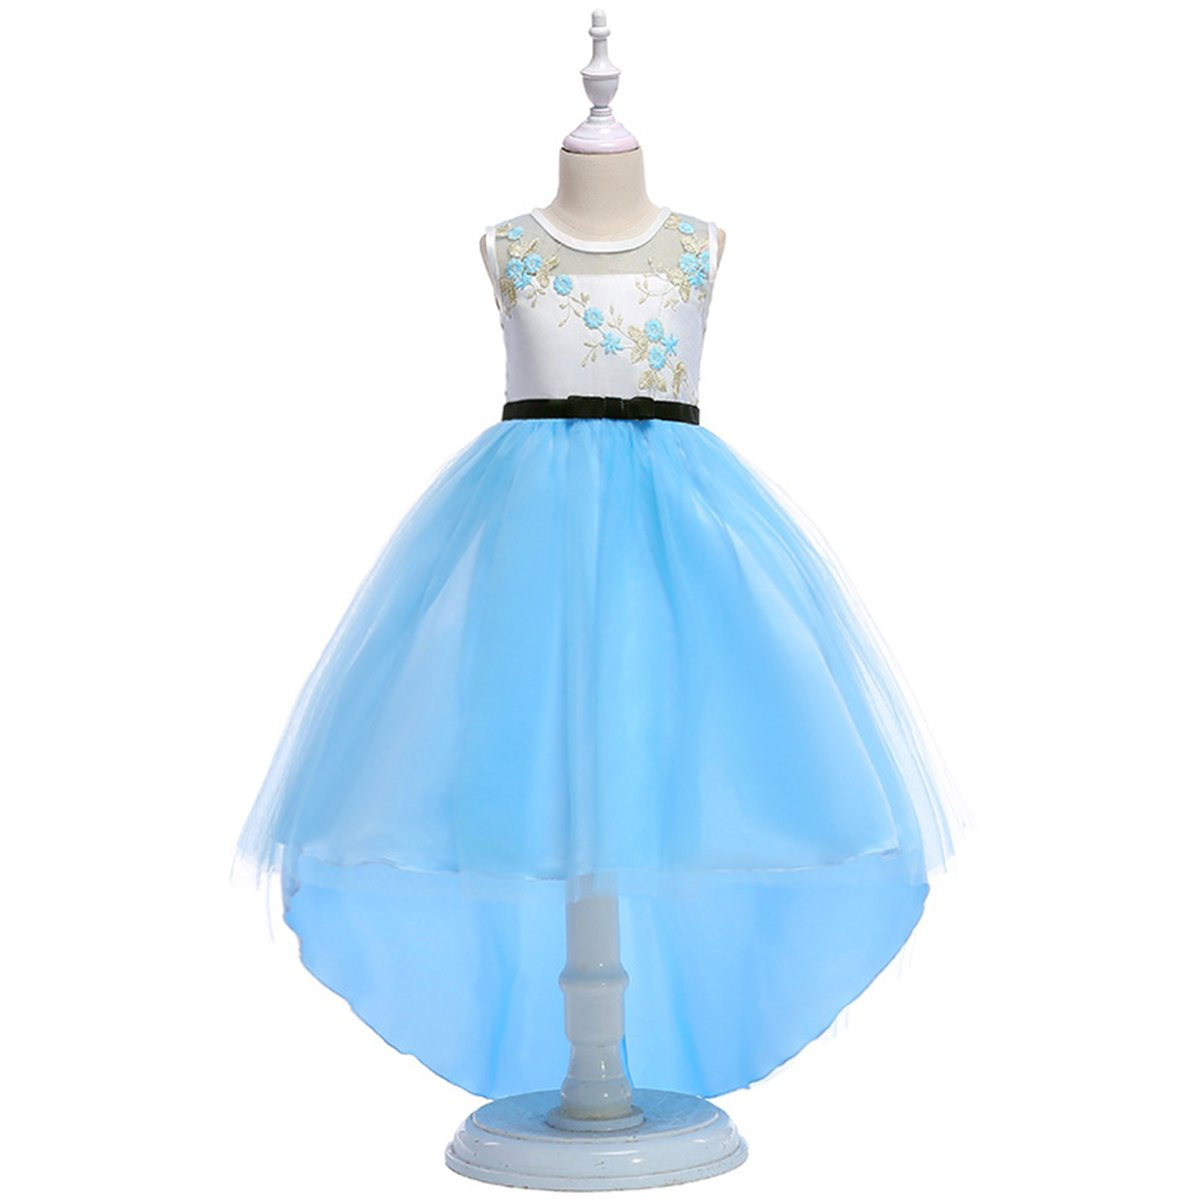 Amazon.com: ADHS Girls Flower Dress Special Occasion Dresses Wedding Prom Party Ball Gown: Clothing